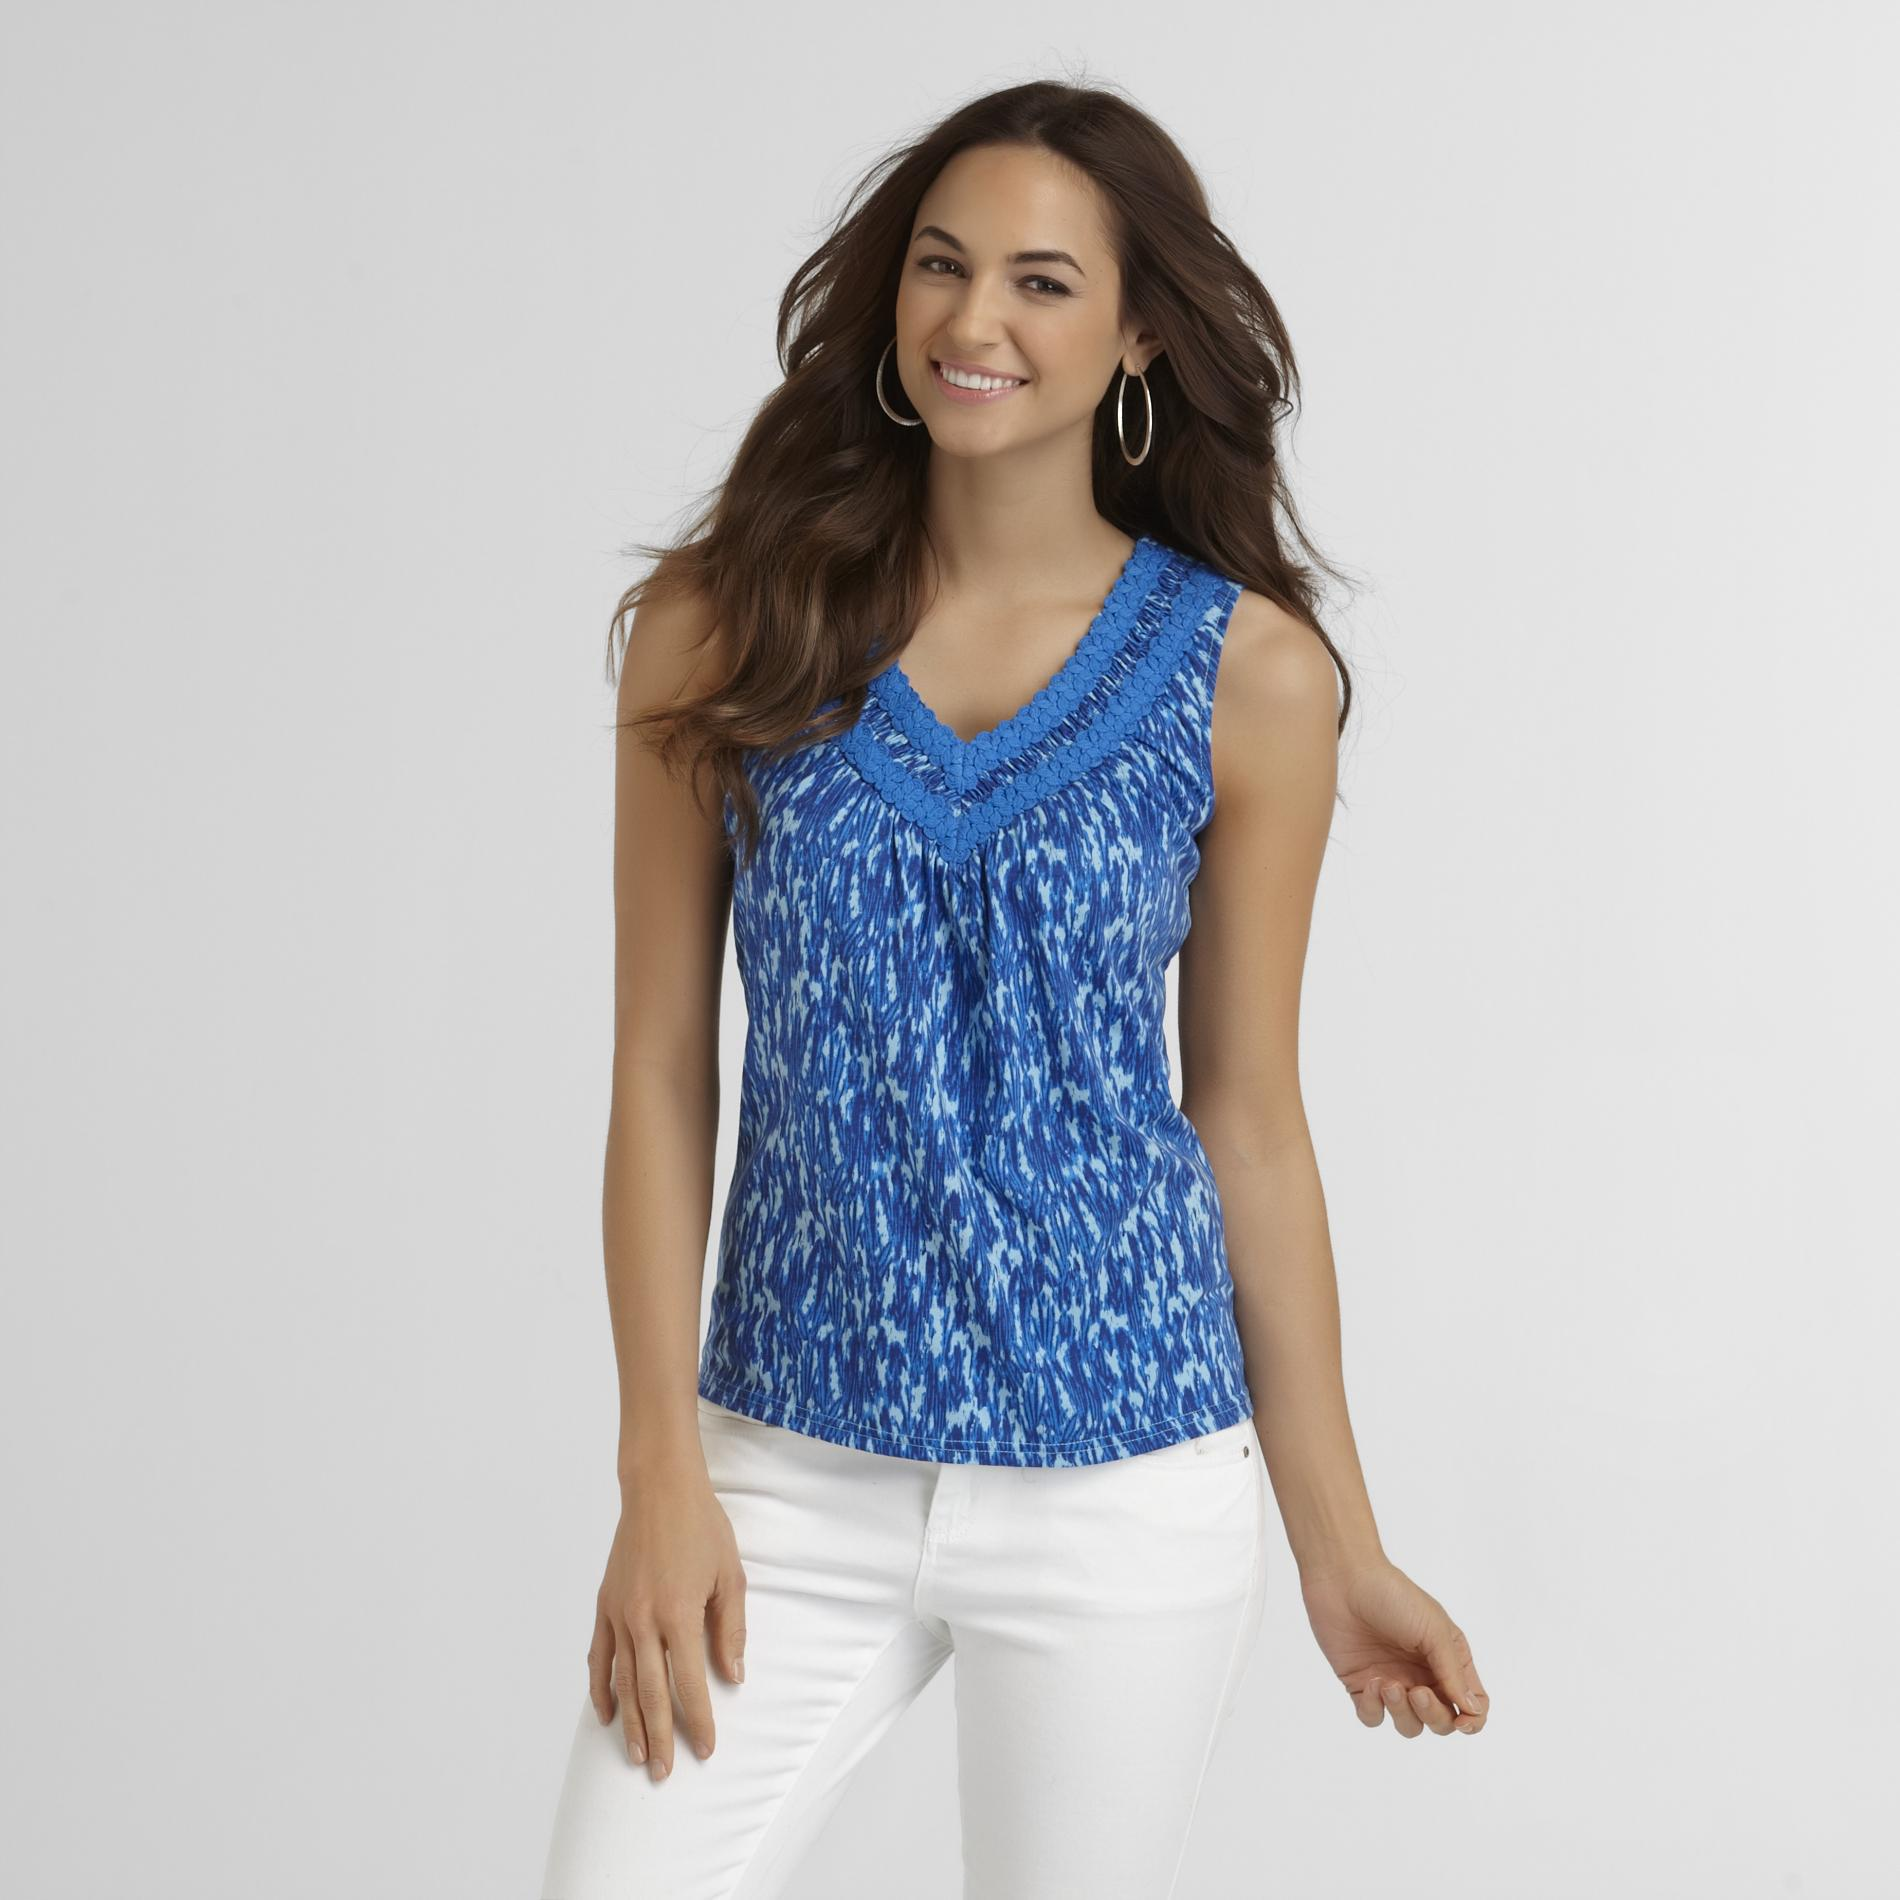 Basic Editions Women's Crocheted V-Neck Tank Top at Kmart.com